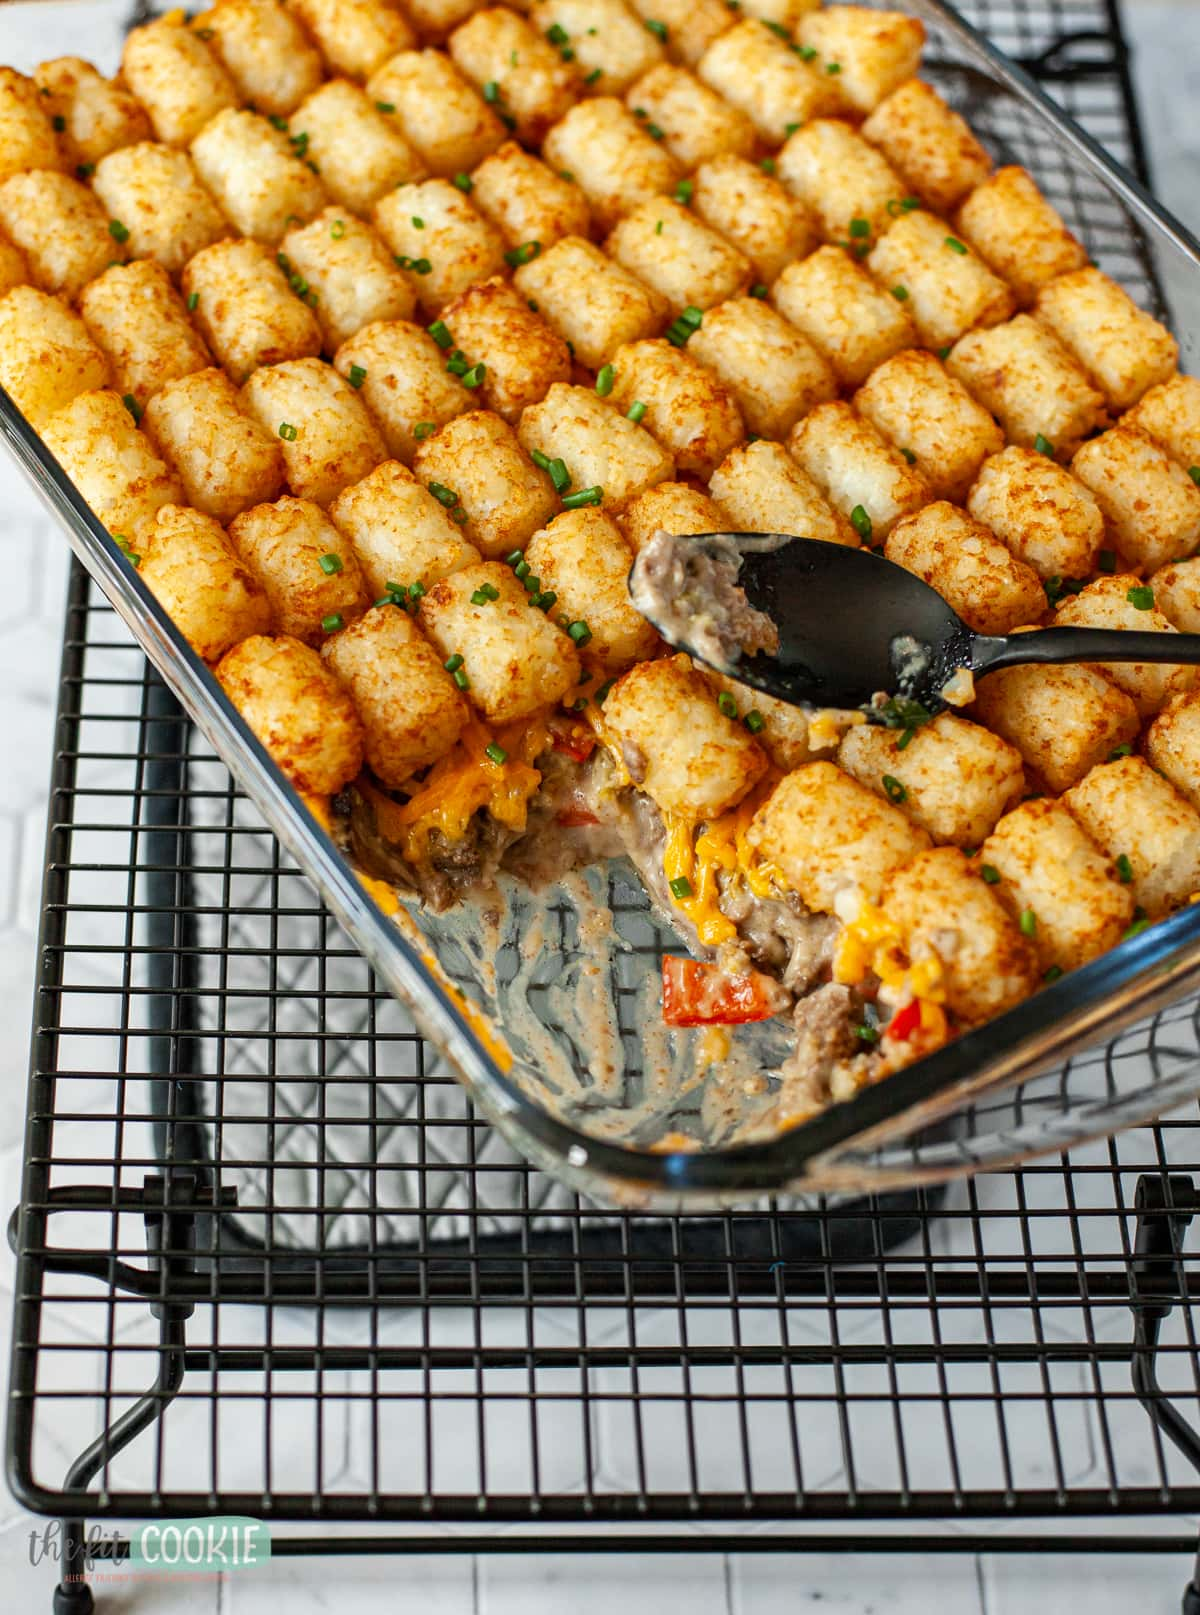 dairy free tater tot casserole in a glass baking dish